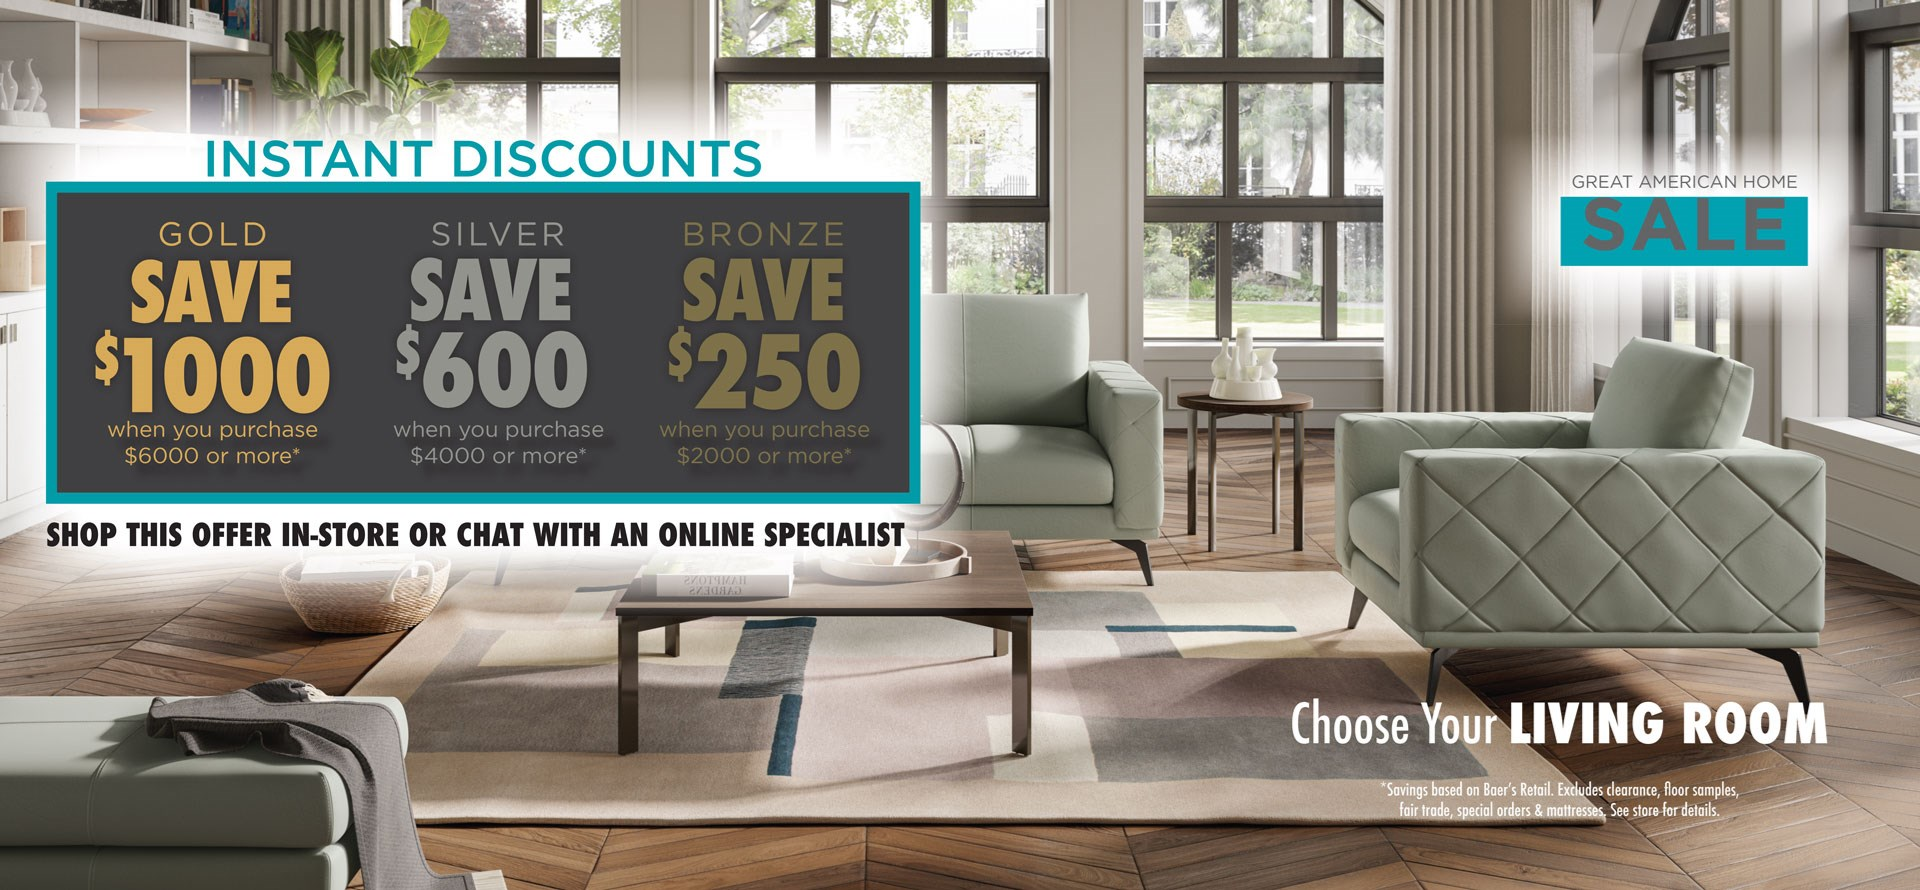 Great American Home Sale - Living Room